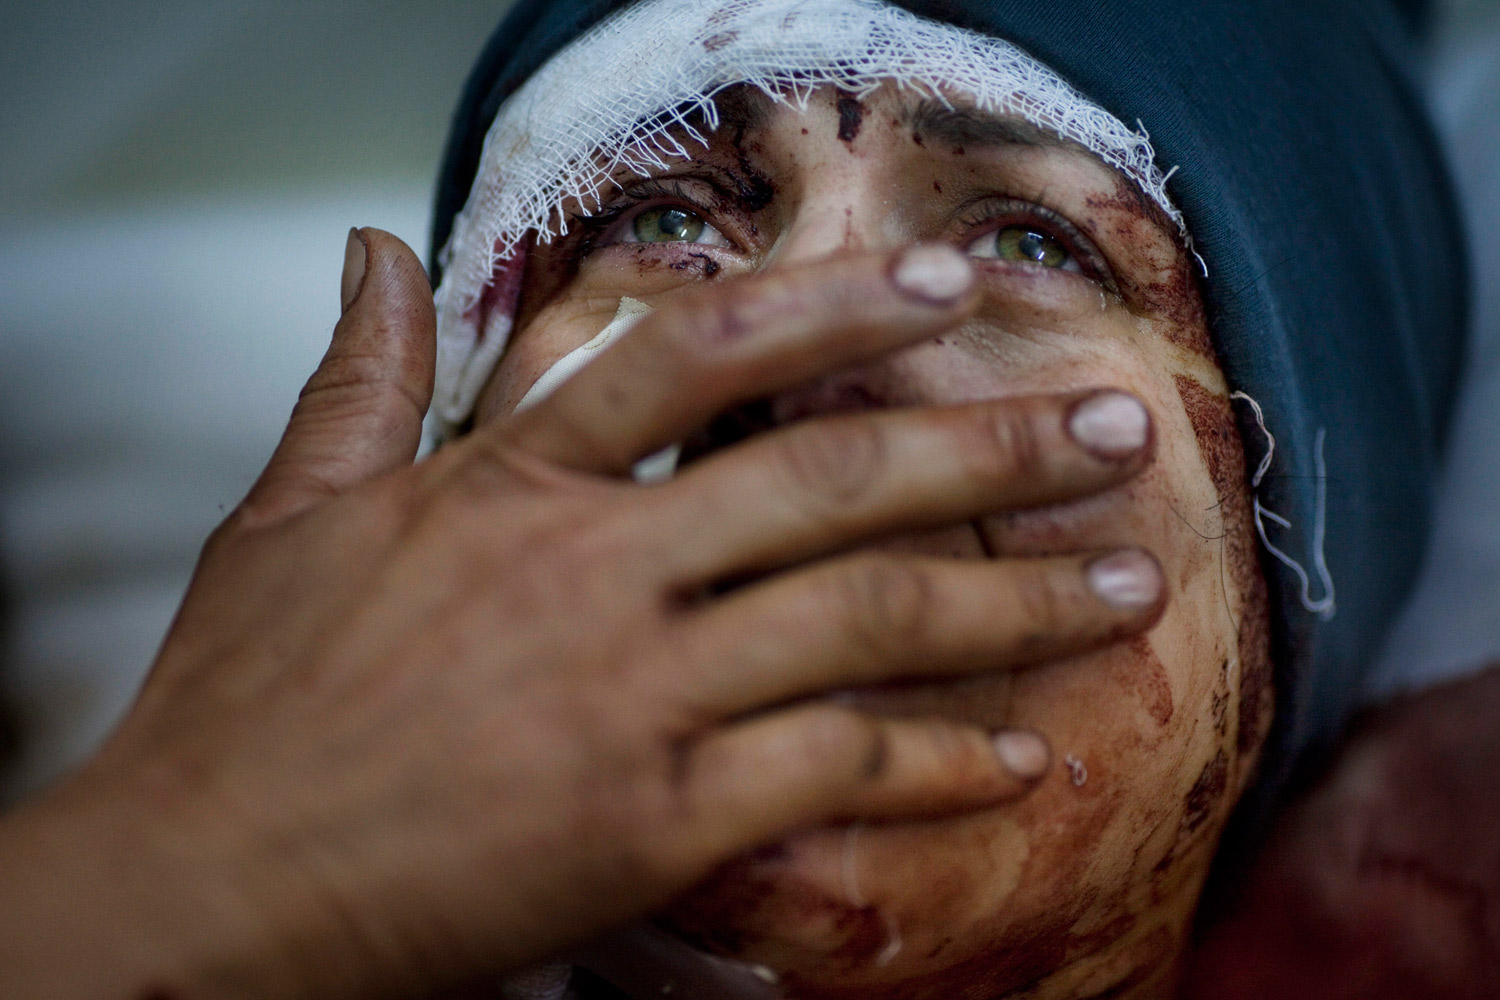 March 10, 2012. Aida cries as she recovers from severe injuries after the Syrian Army shelled her house in Idlib. Aida's husband and two children were killed after their home was shelled.